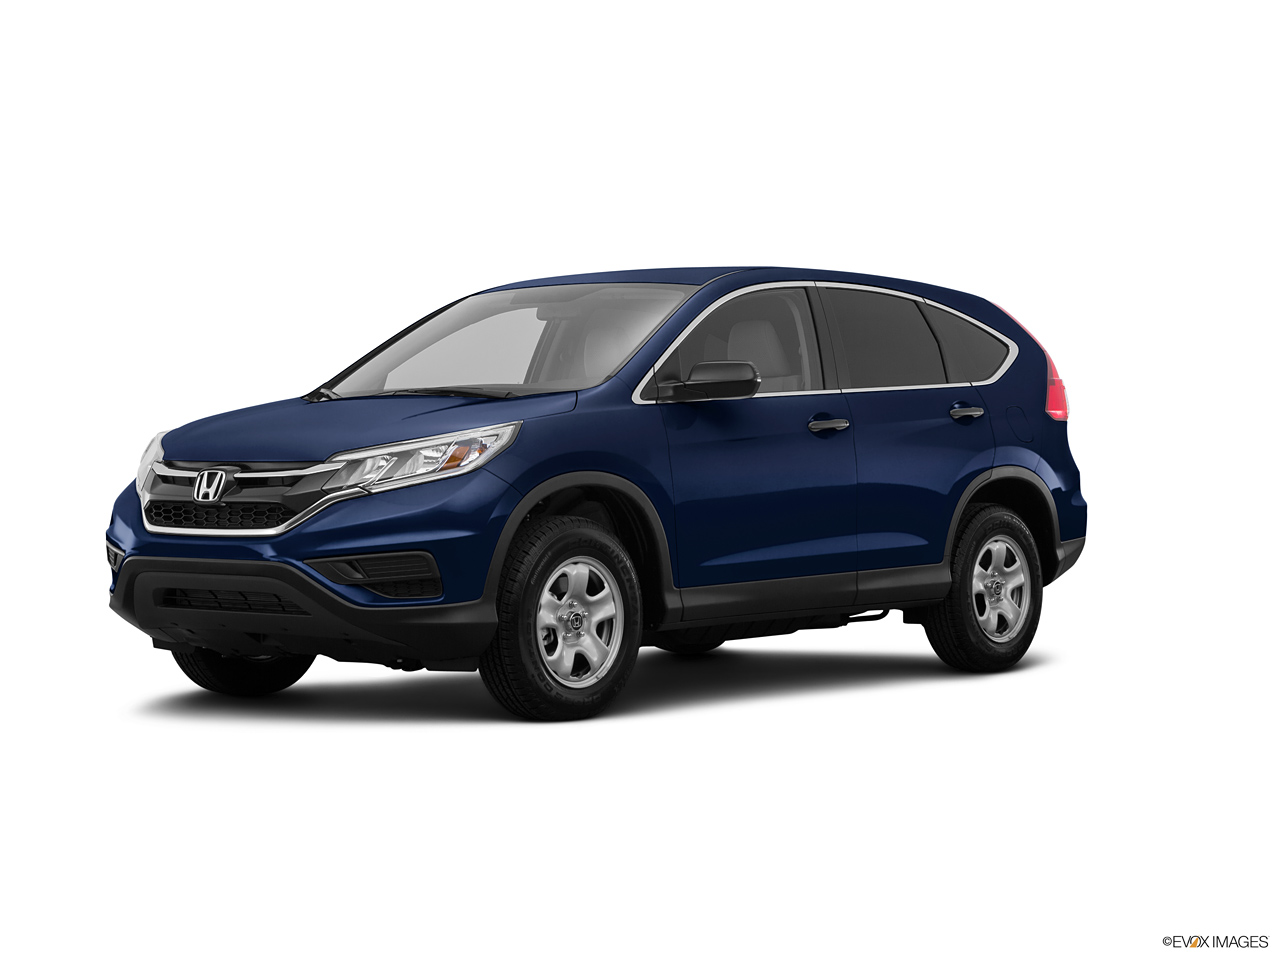 Car pictures list for honda crv 2016 2 4 ex uae yallamotor for Honda crv competitors